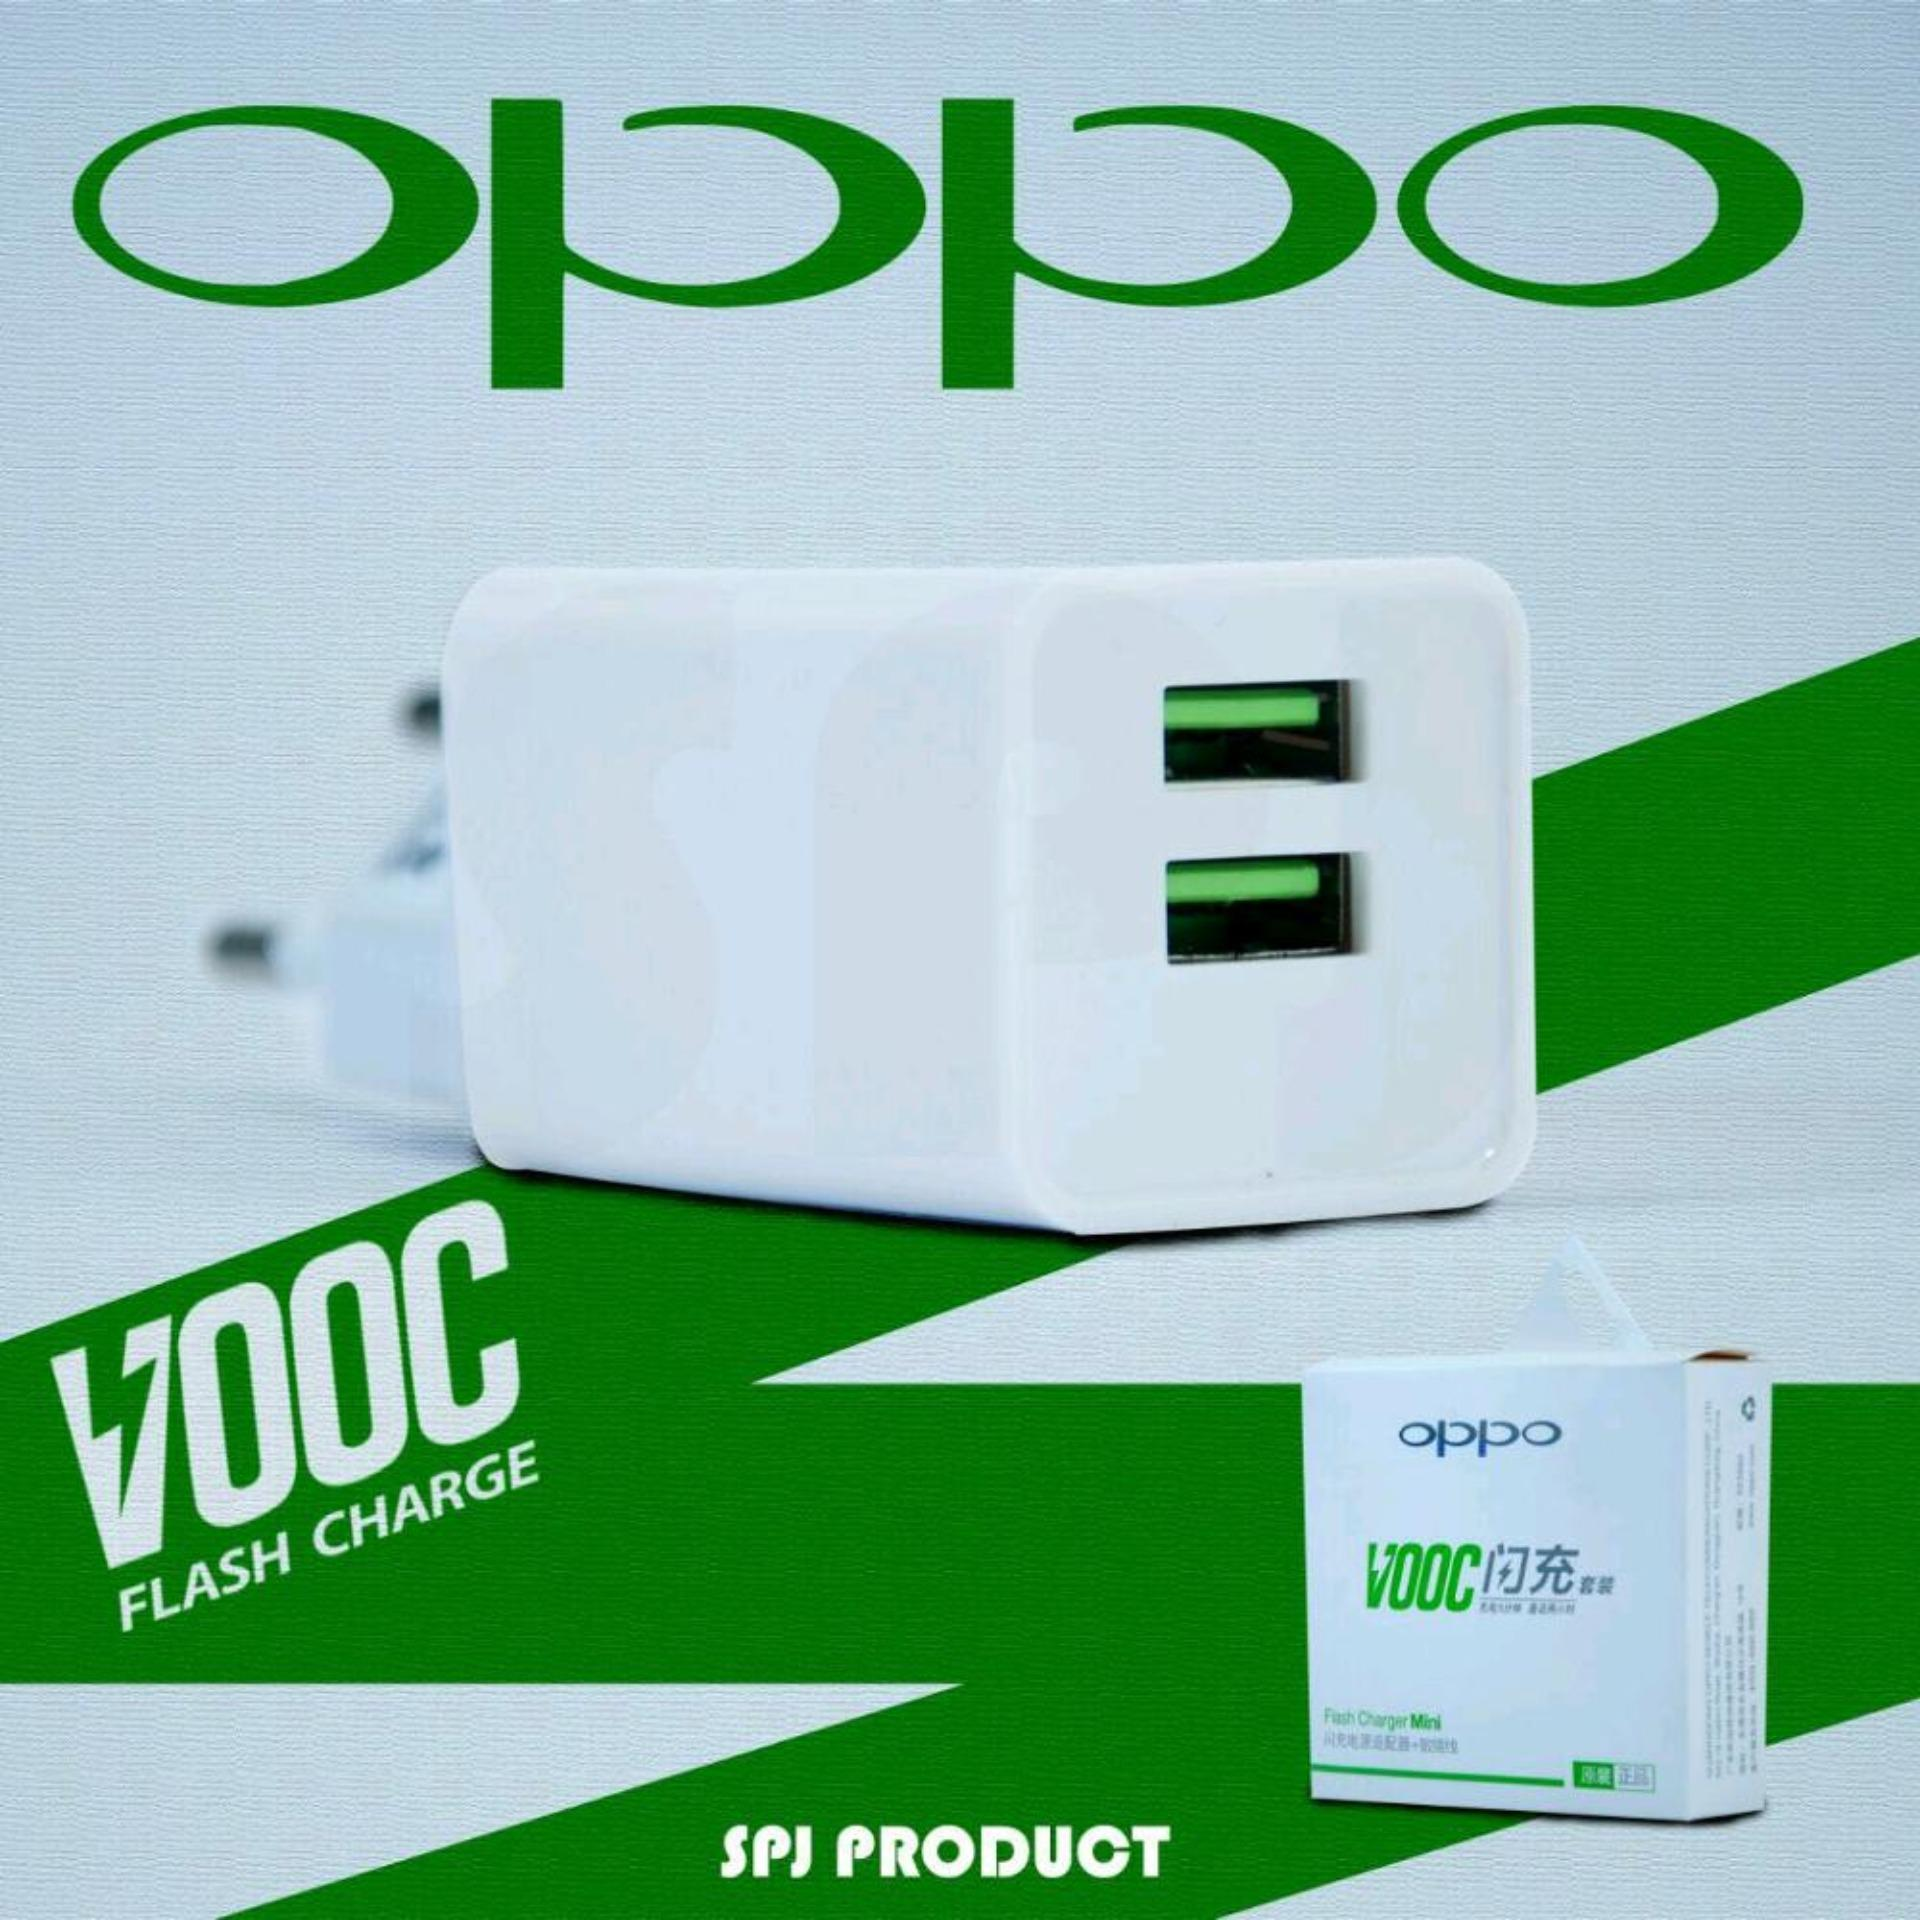 VOOC Universal Charger for OPPO